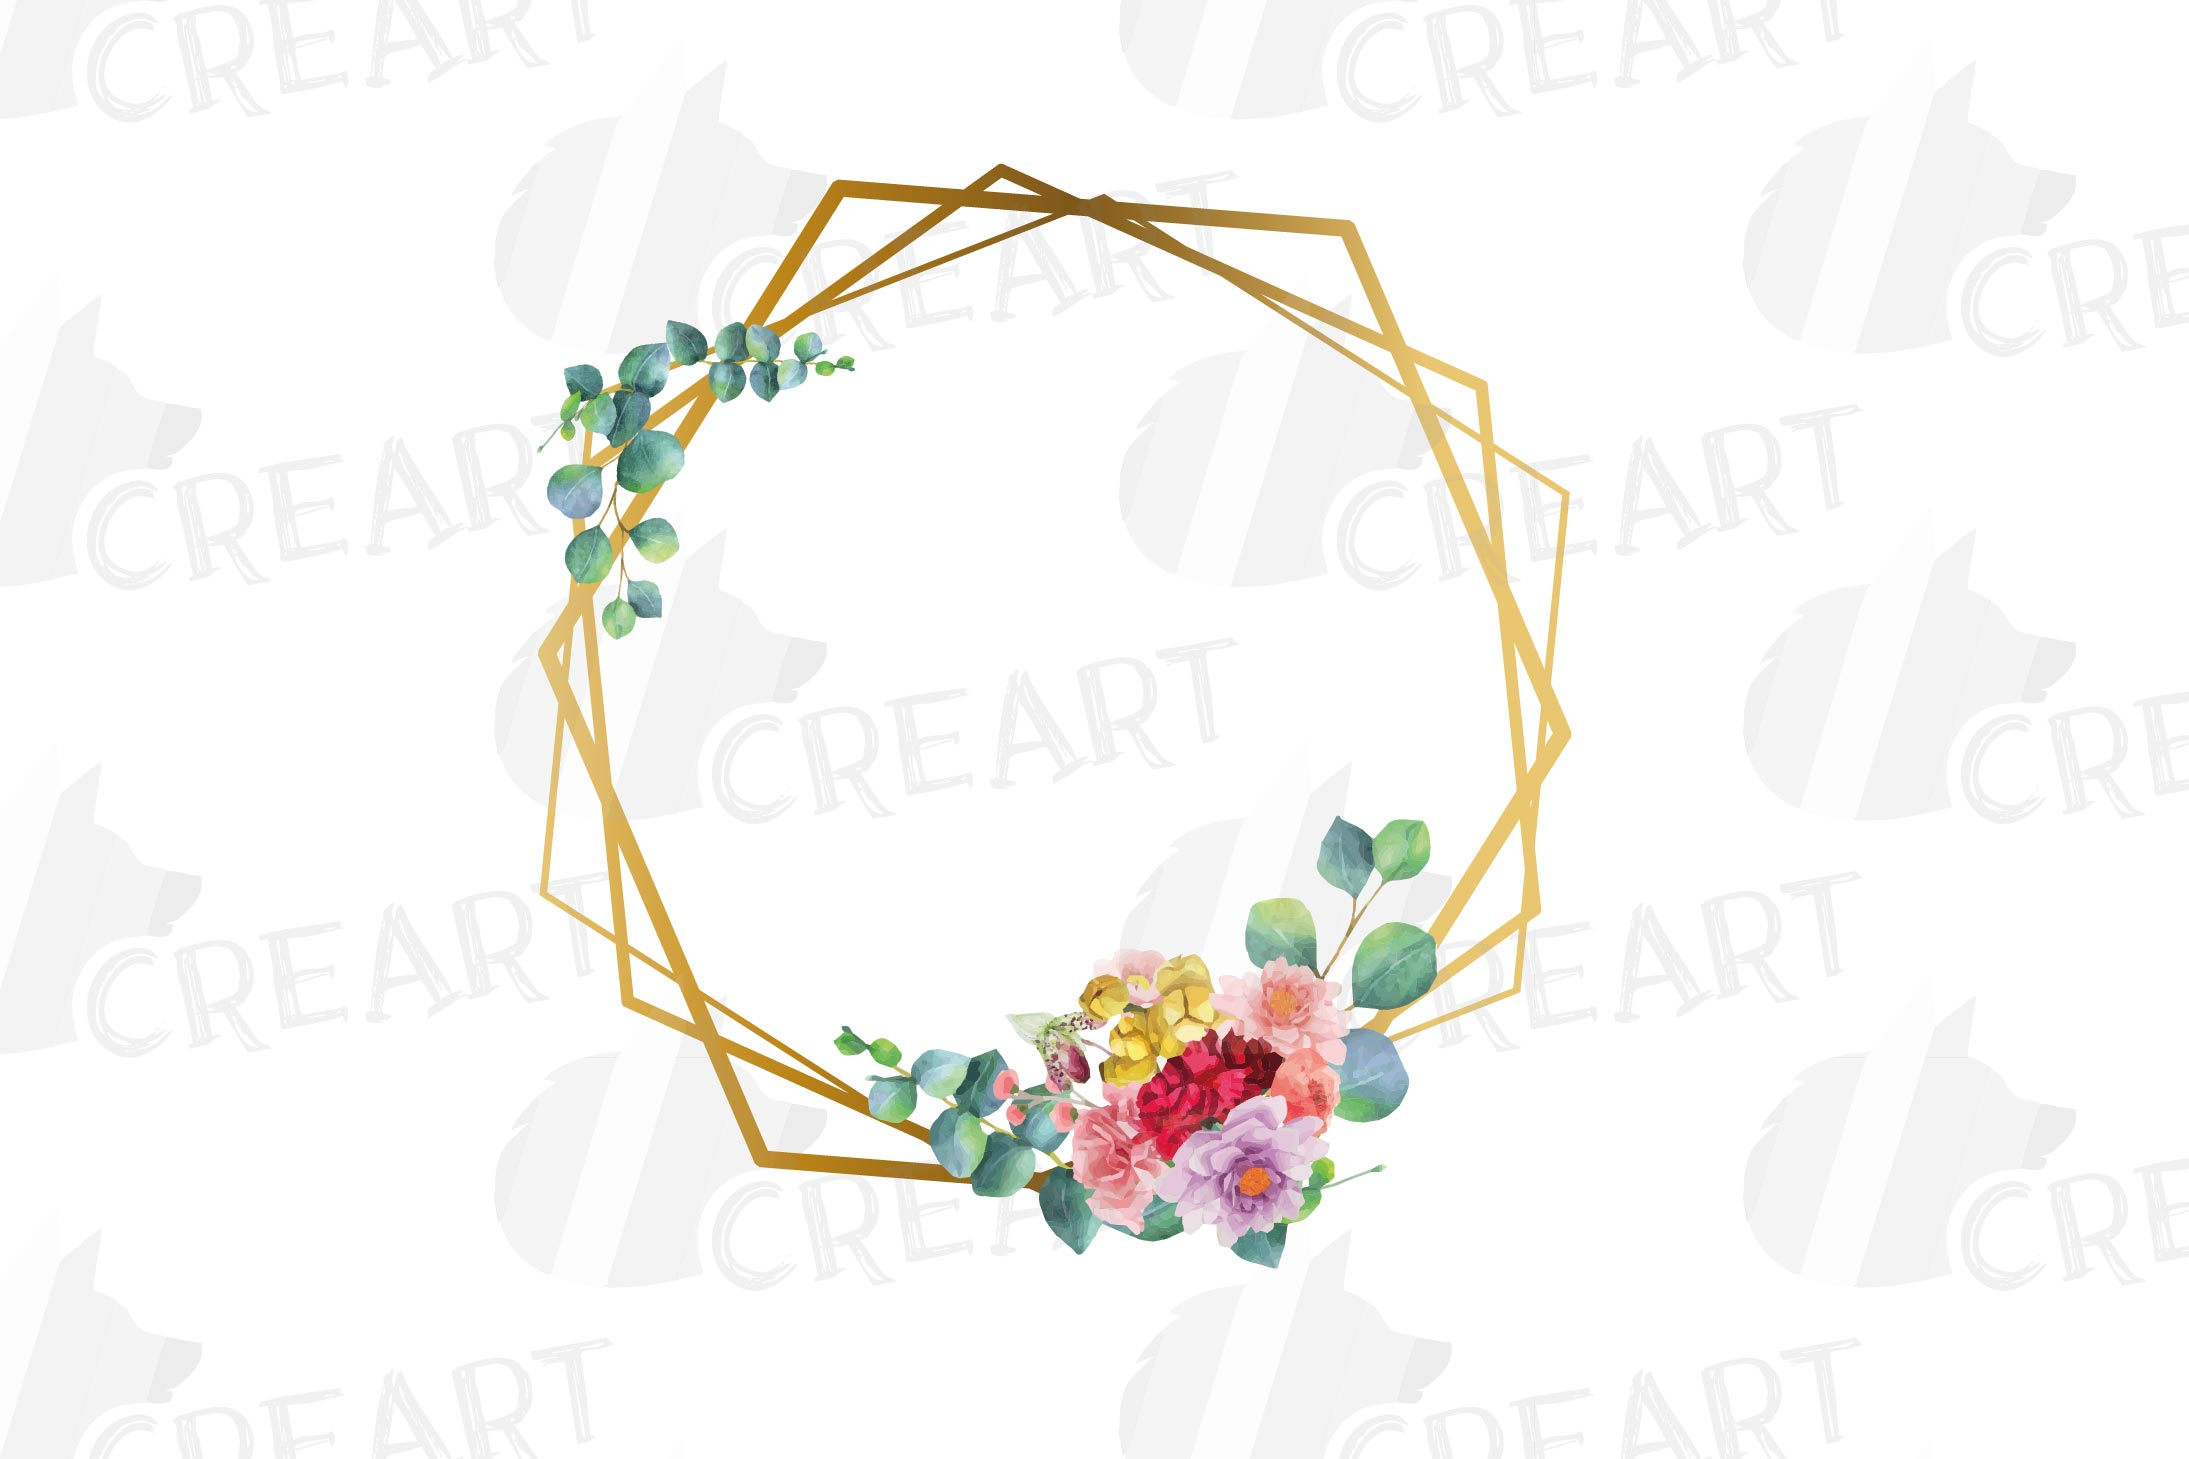 Watercolor floral golden frames and borders clip art pack example image 9